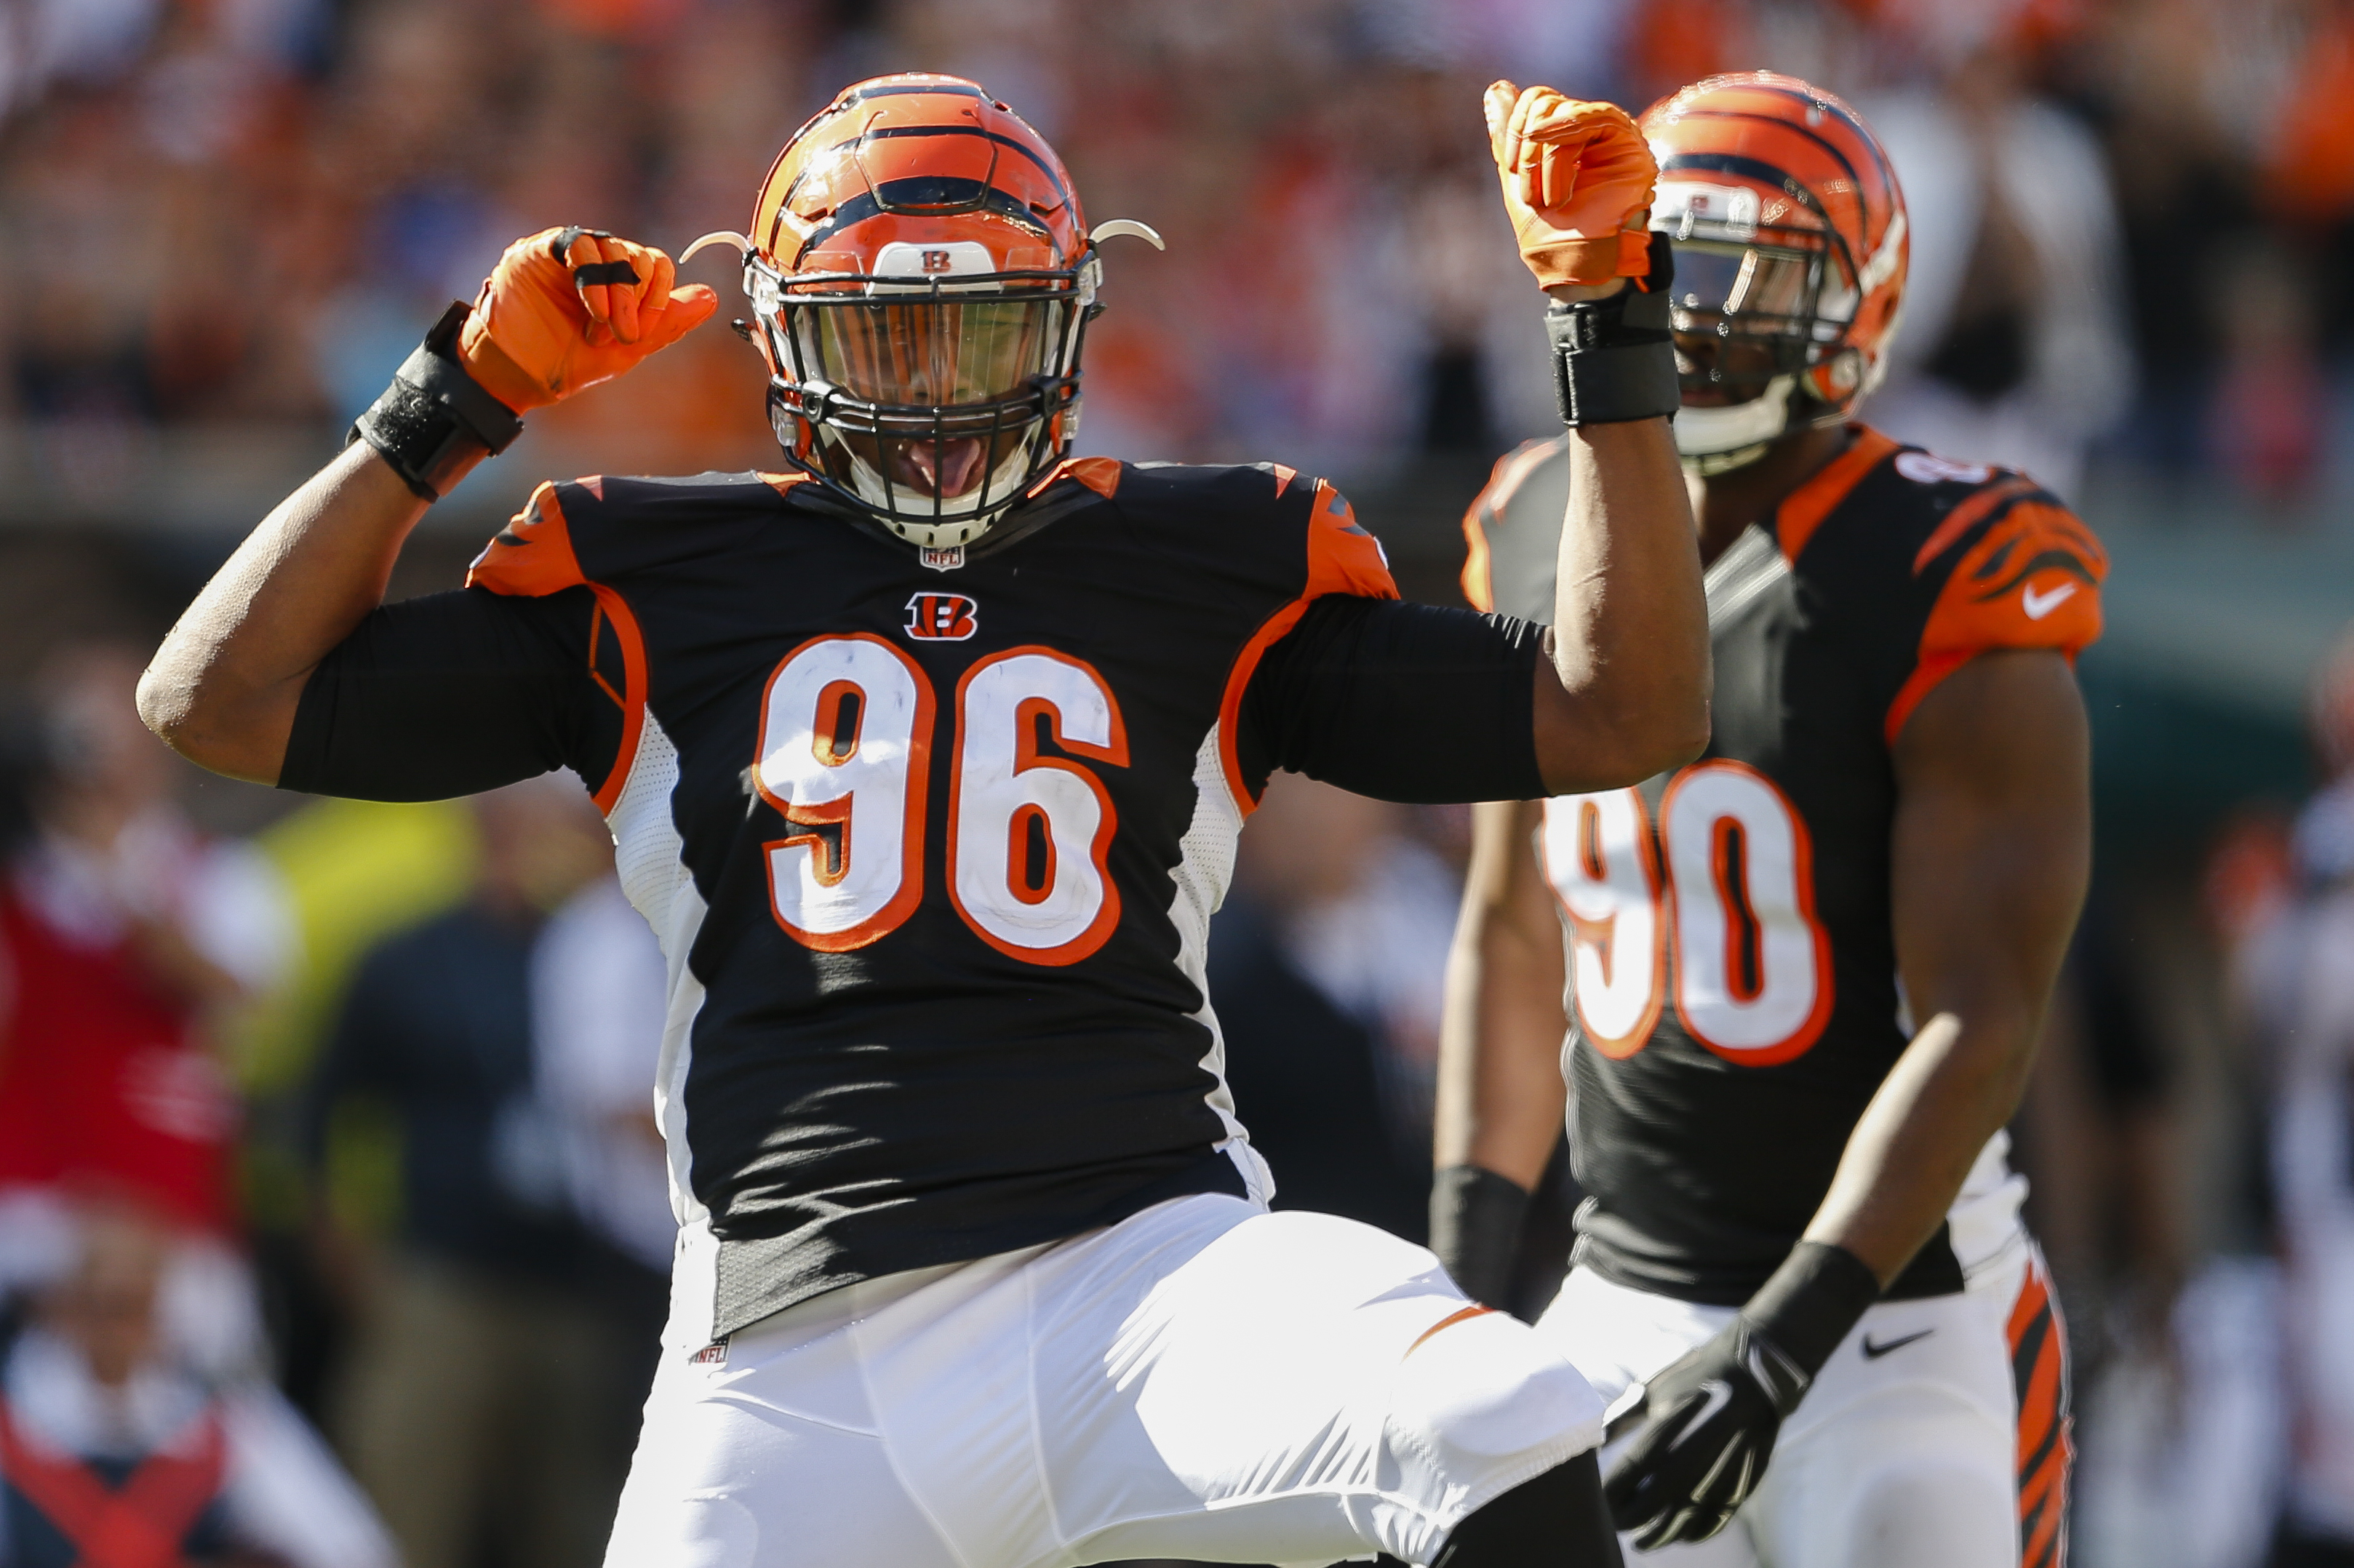 Cincinnati Bengals defensive end Carlos Dunlap (96) reacts after sacking Seattle Seahawks quarterback Russell Wilson (not shown) in the second half of an NFL football game, Sunday, Oct. 11, 2015, in Cincinnati. (AP Photo/Gary Landers)